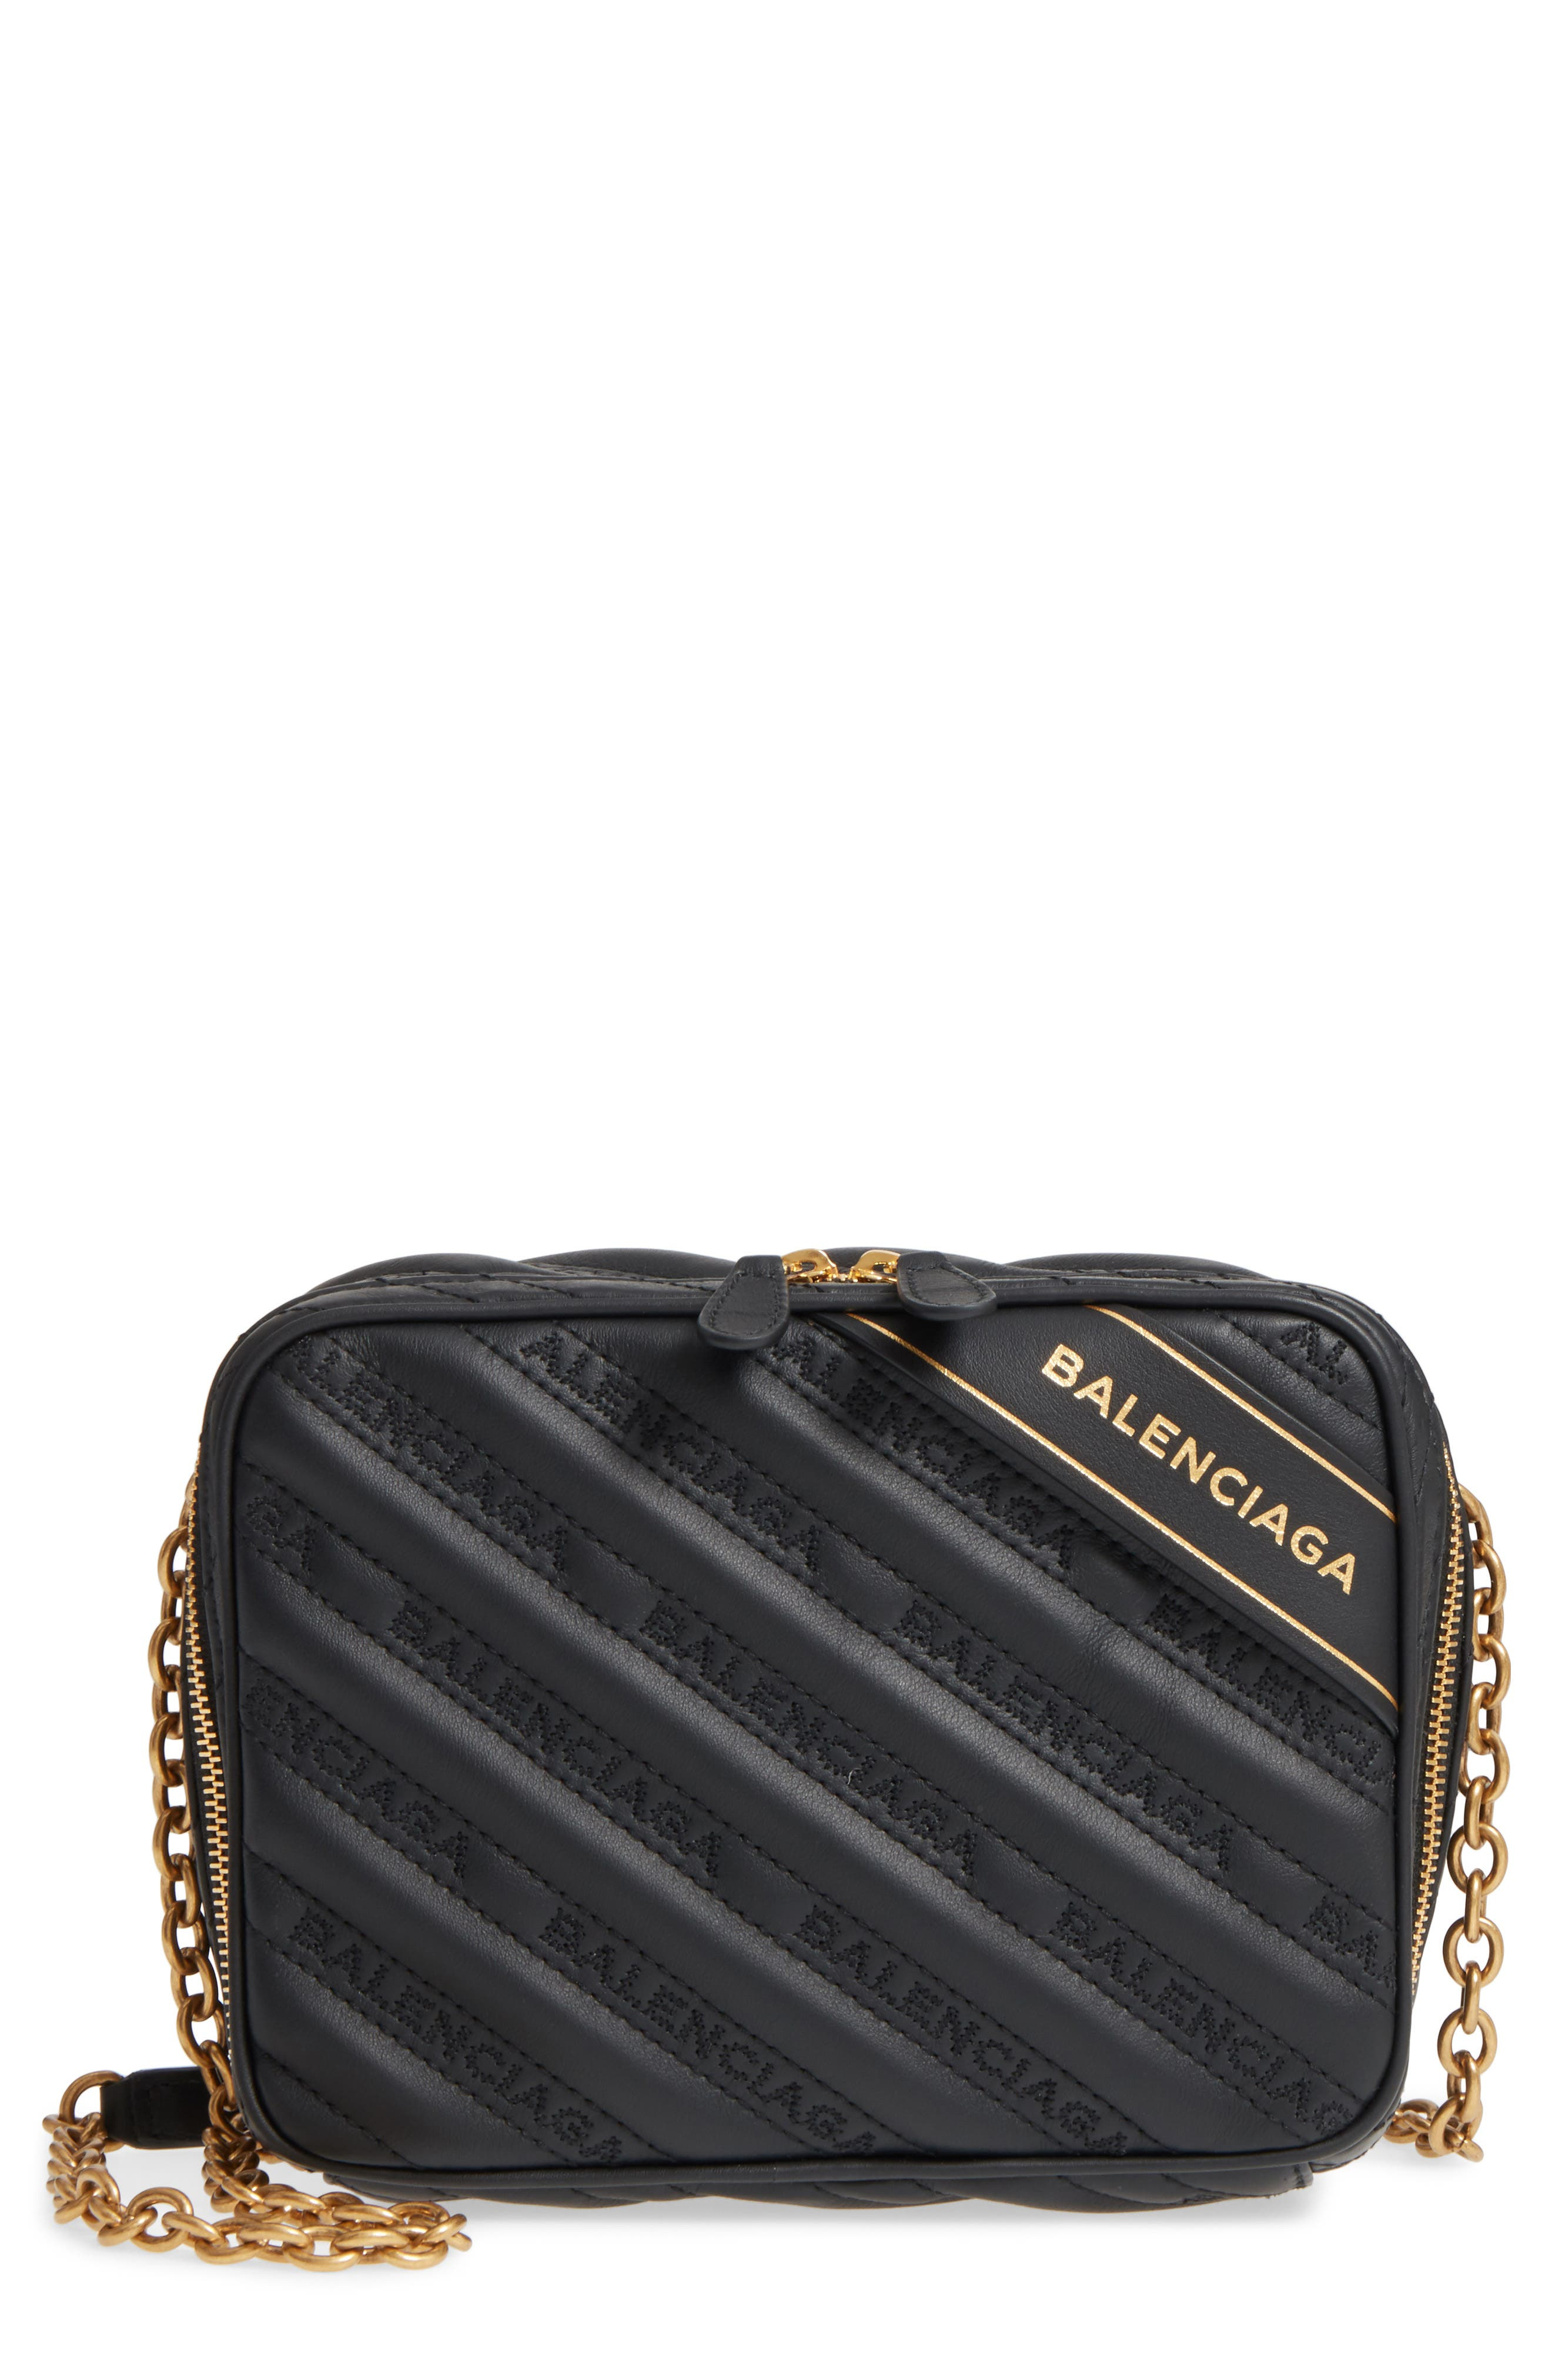 VIDA Leather Statement Clutch - SHADOW FALLS by VIDA DilVkexbe